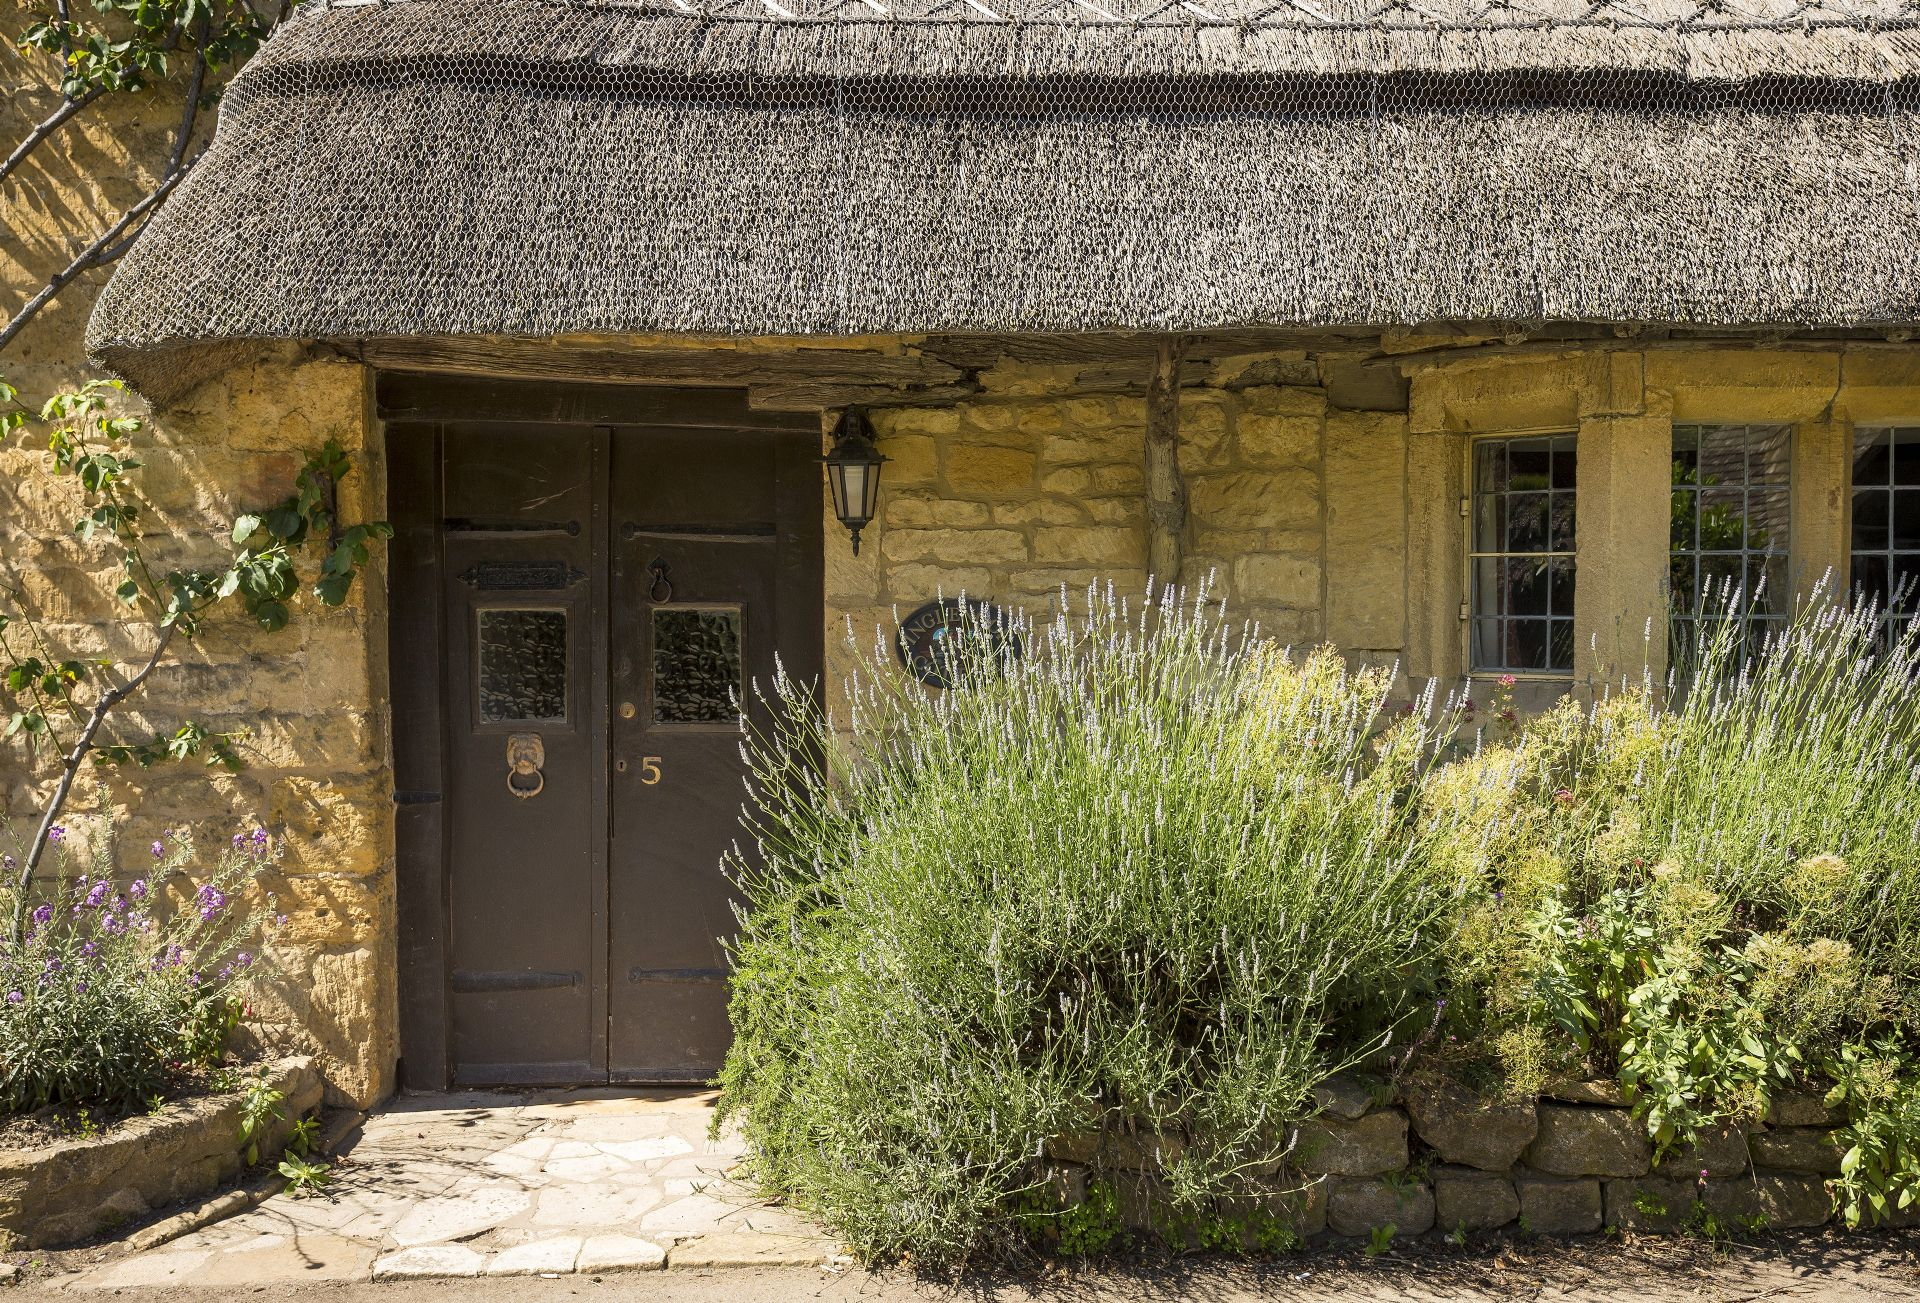 Entry to Inglenook Cottage